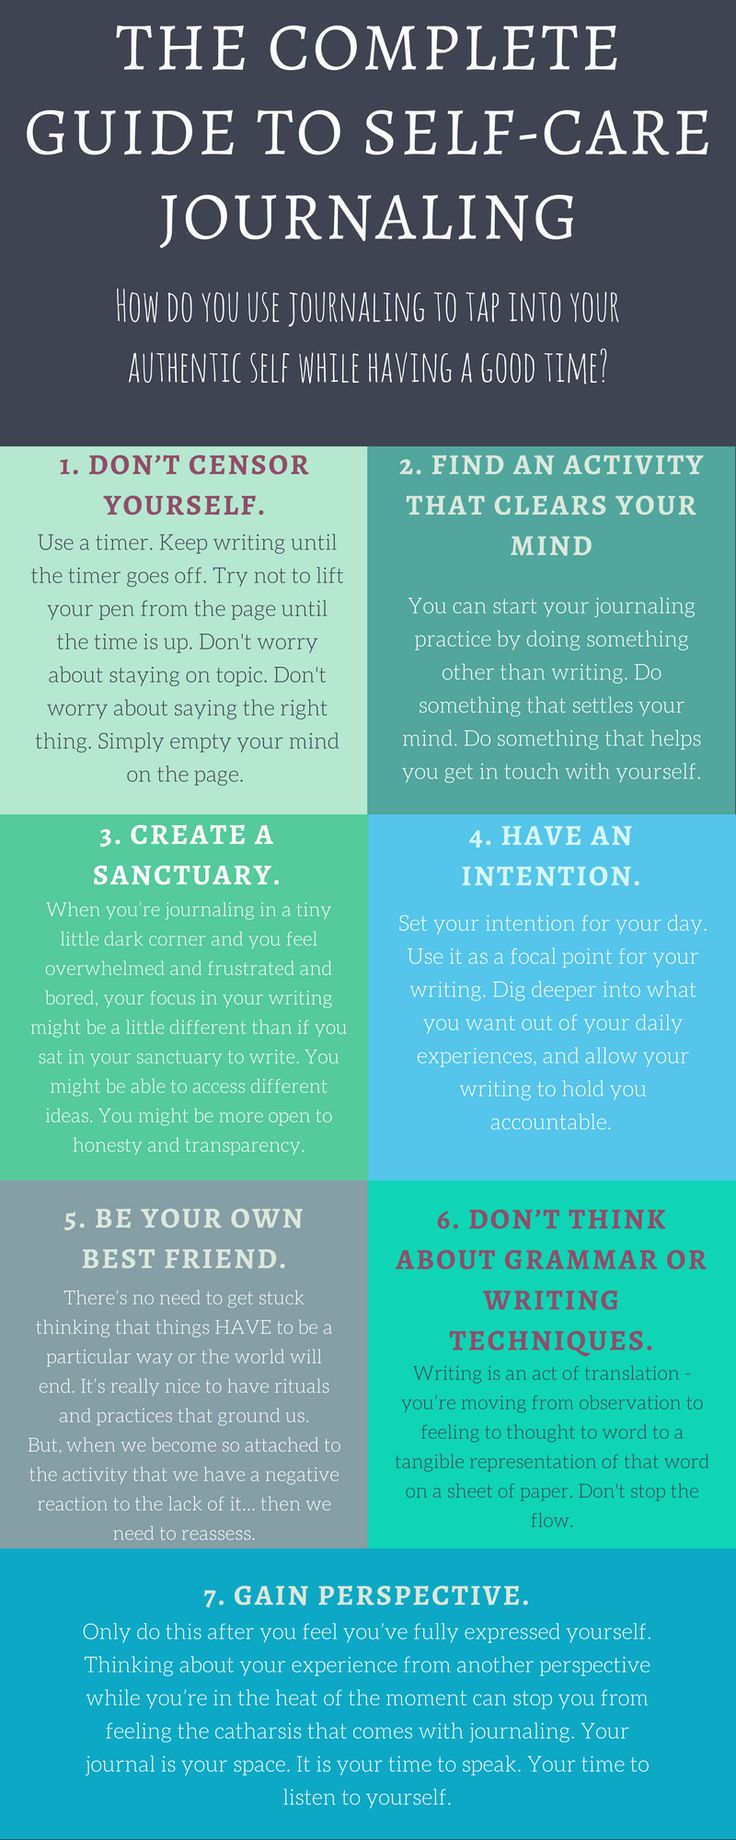 It's the ultimate self-care activity. Something you do for yourself that ignites your soul, stimulates your mind, and opens your heart. If it's great then why doesn't everyone do it? I believe it has something to do with not having the tools to make the journaling process fun and soothing. Click the pin to get all 10 tools and tips to help you get the most of out the ultimate self-care activity: Journaling. Go to TheTruthPractice.com for more on inspiration, authenticity, and self-care.